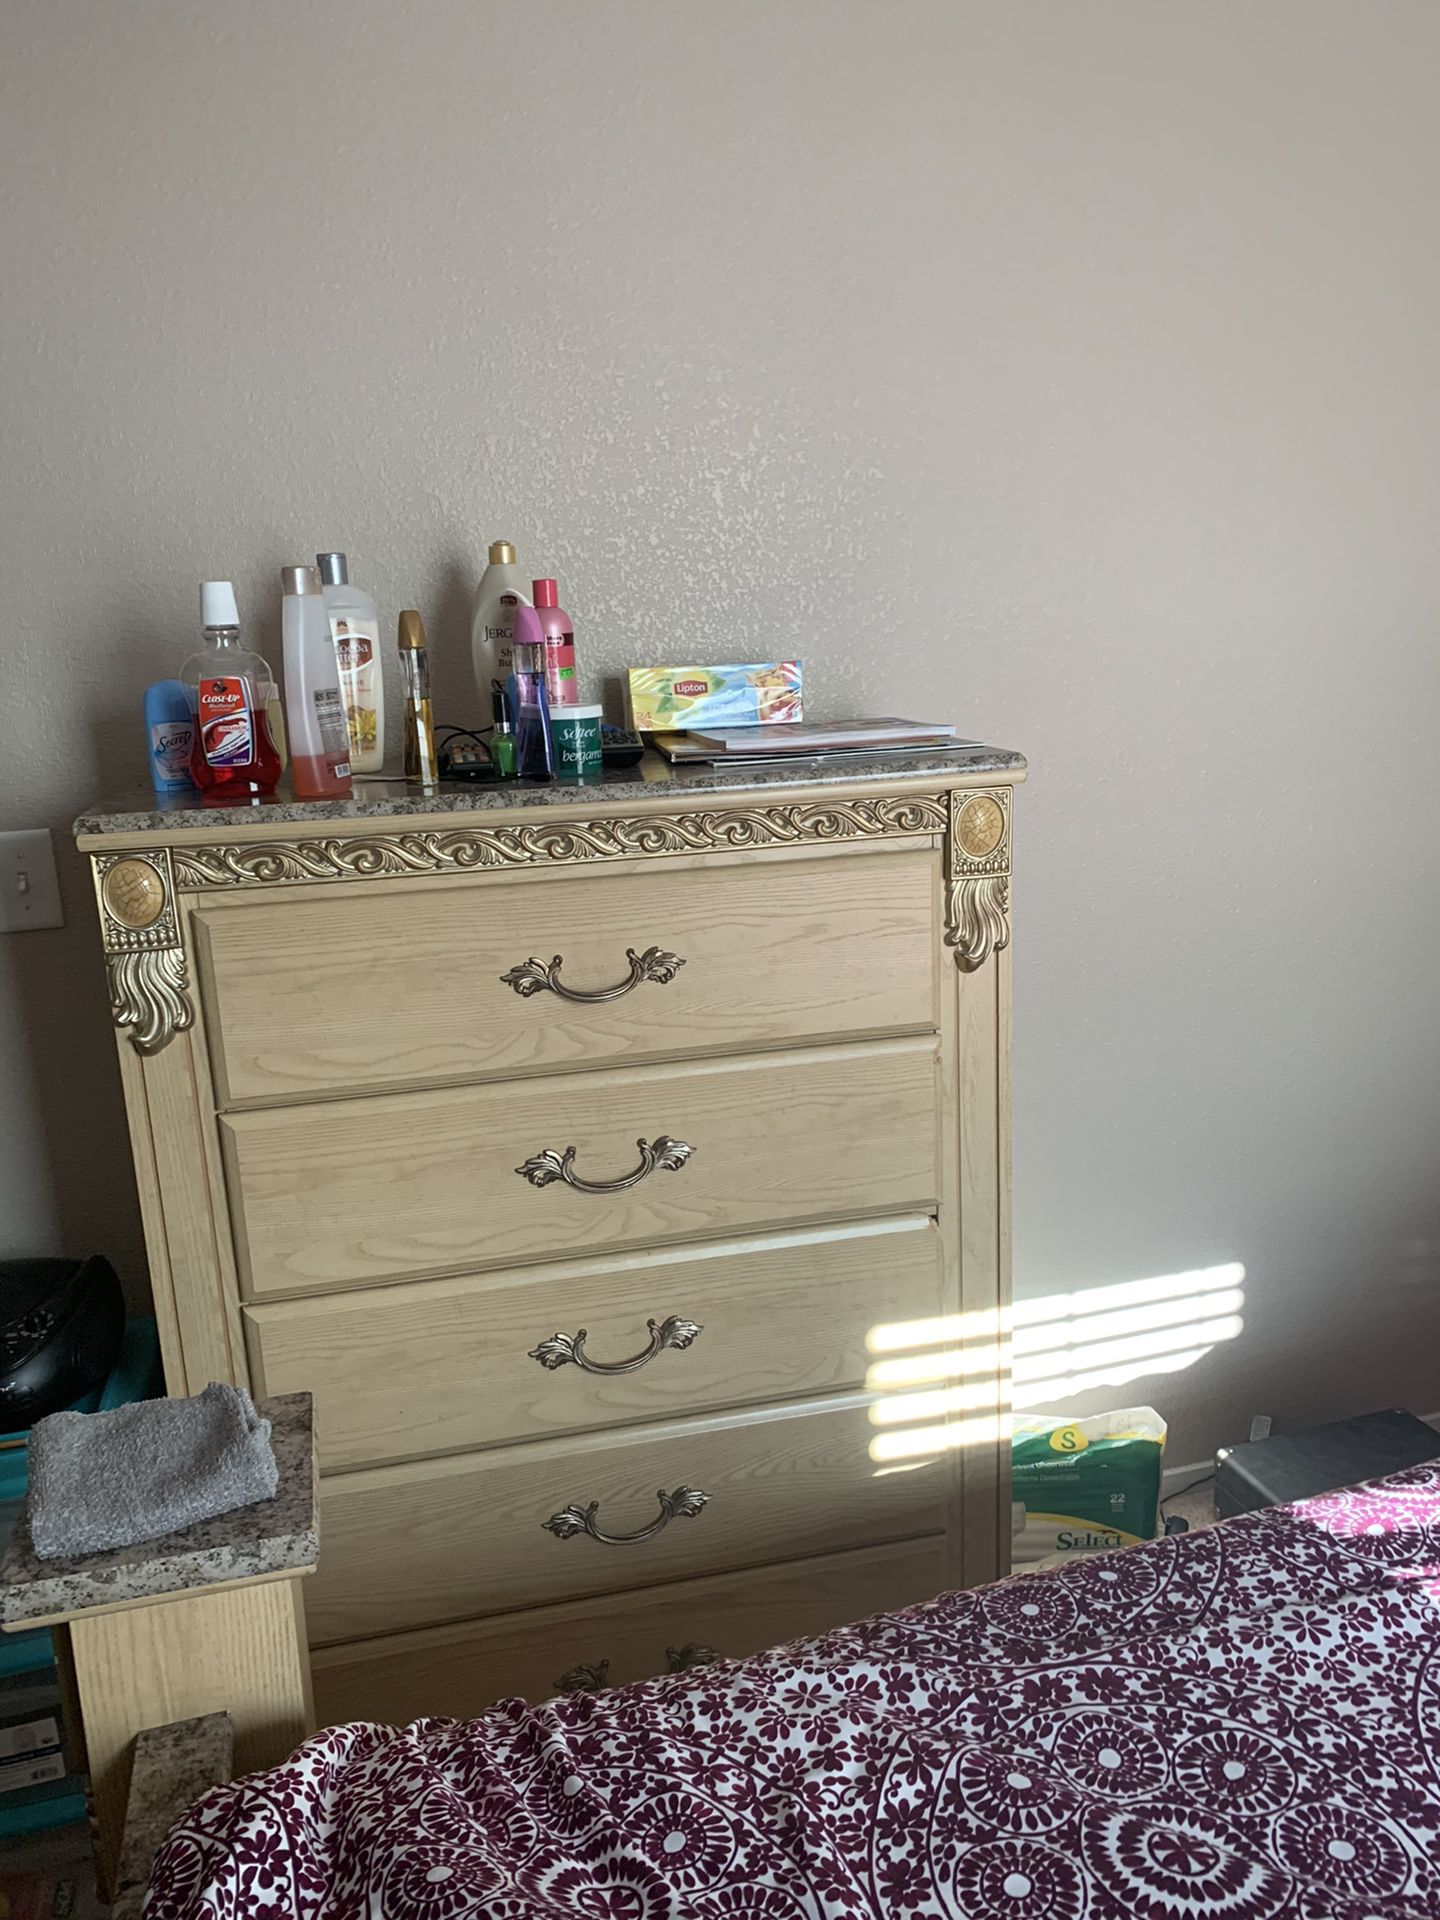 Beige queen size bedroom set with dresser and mirror chest and 1 night stand